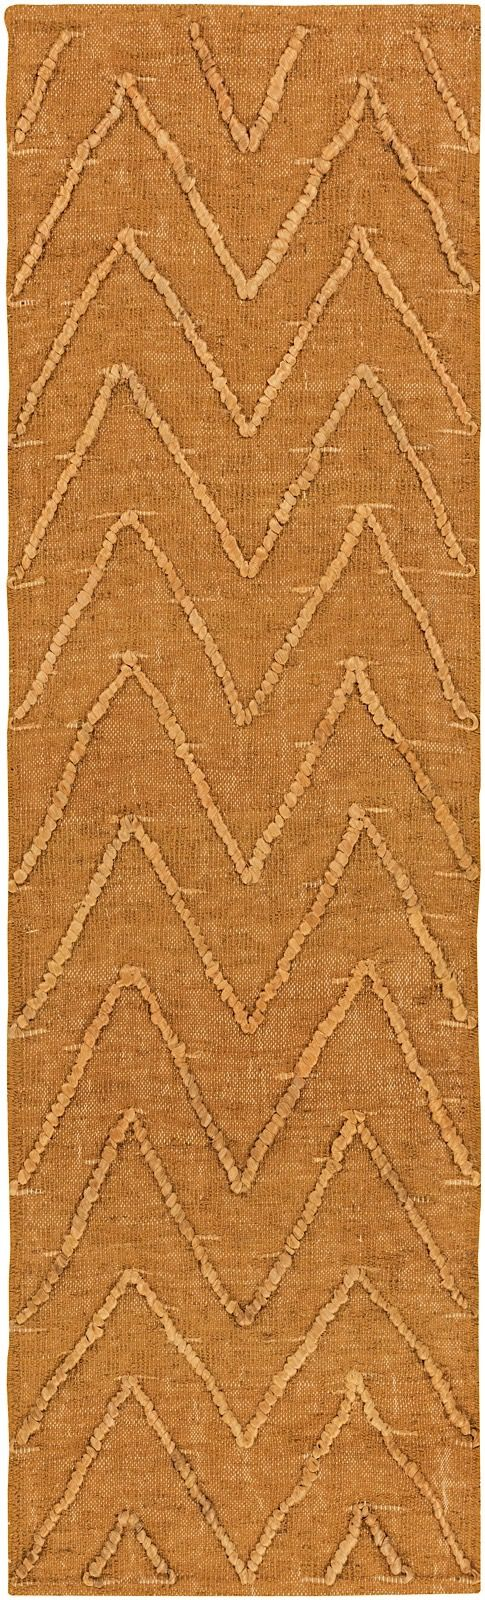 surya mateo contemporary area rug collection